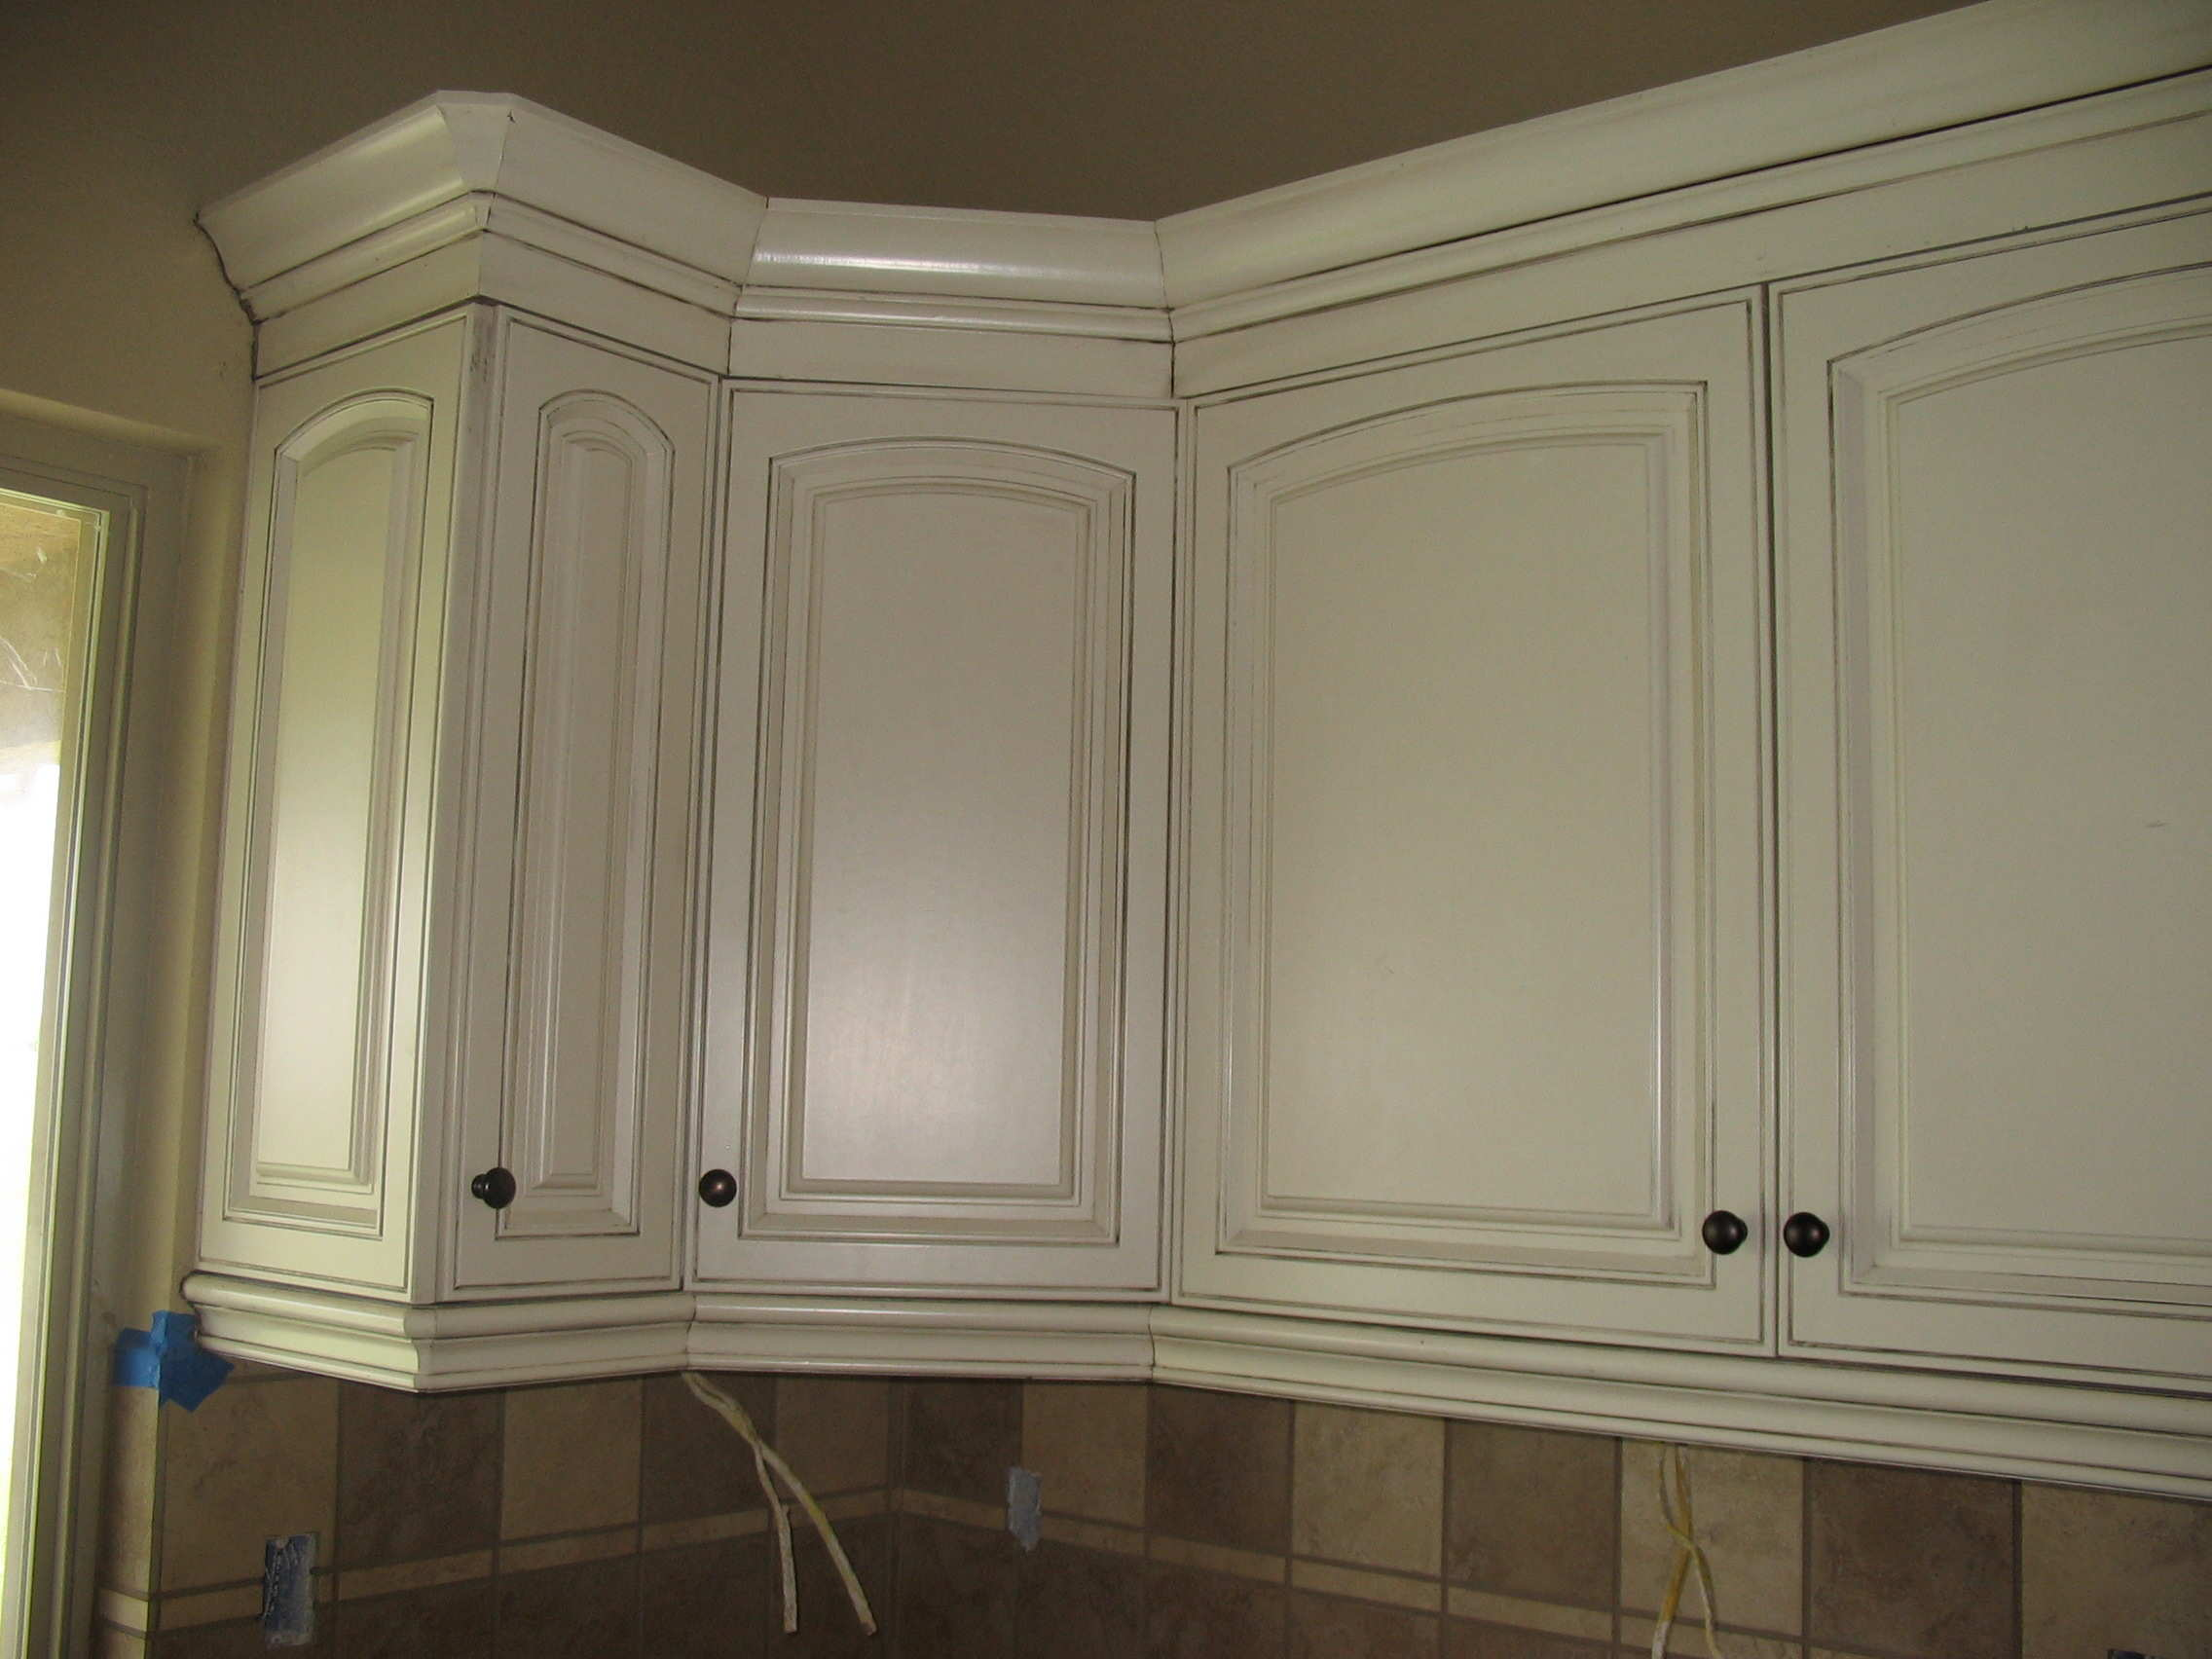 restaining-kitchen-cabinets-gel-stain-photo-13